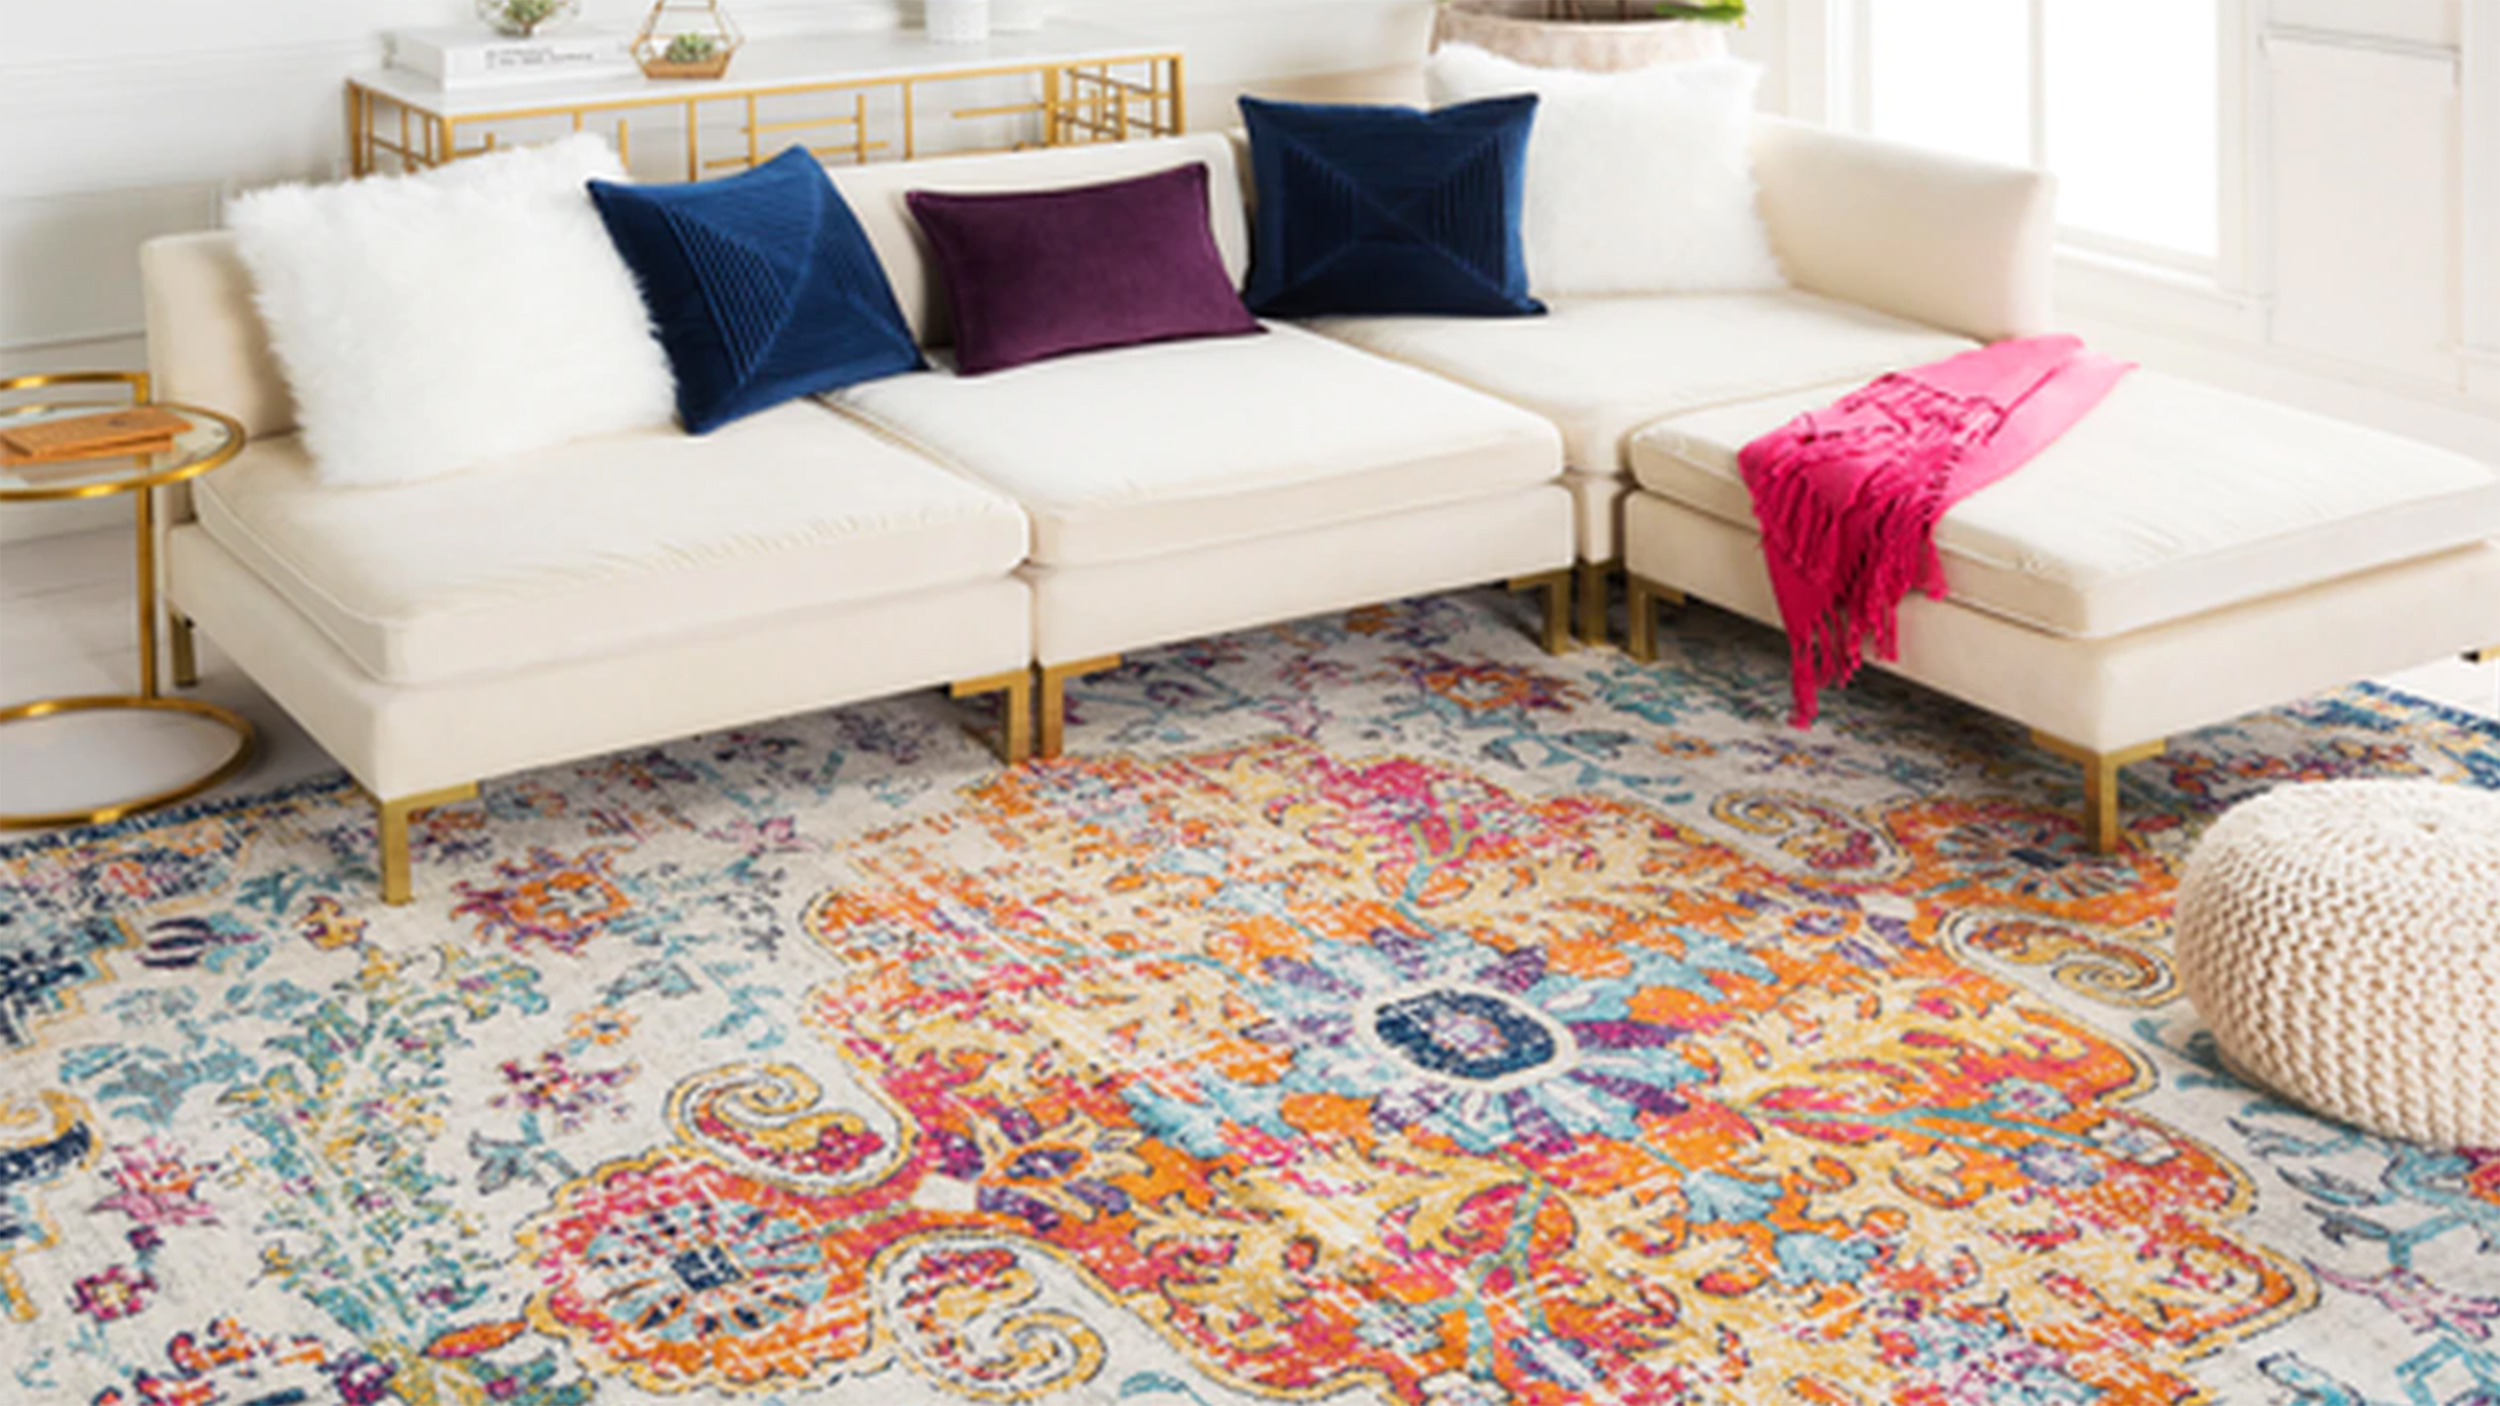 Colorful Area Rugs For Your Home Cnn, Living Room Rugs